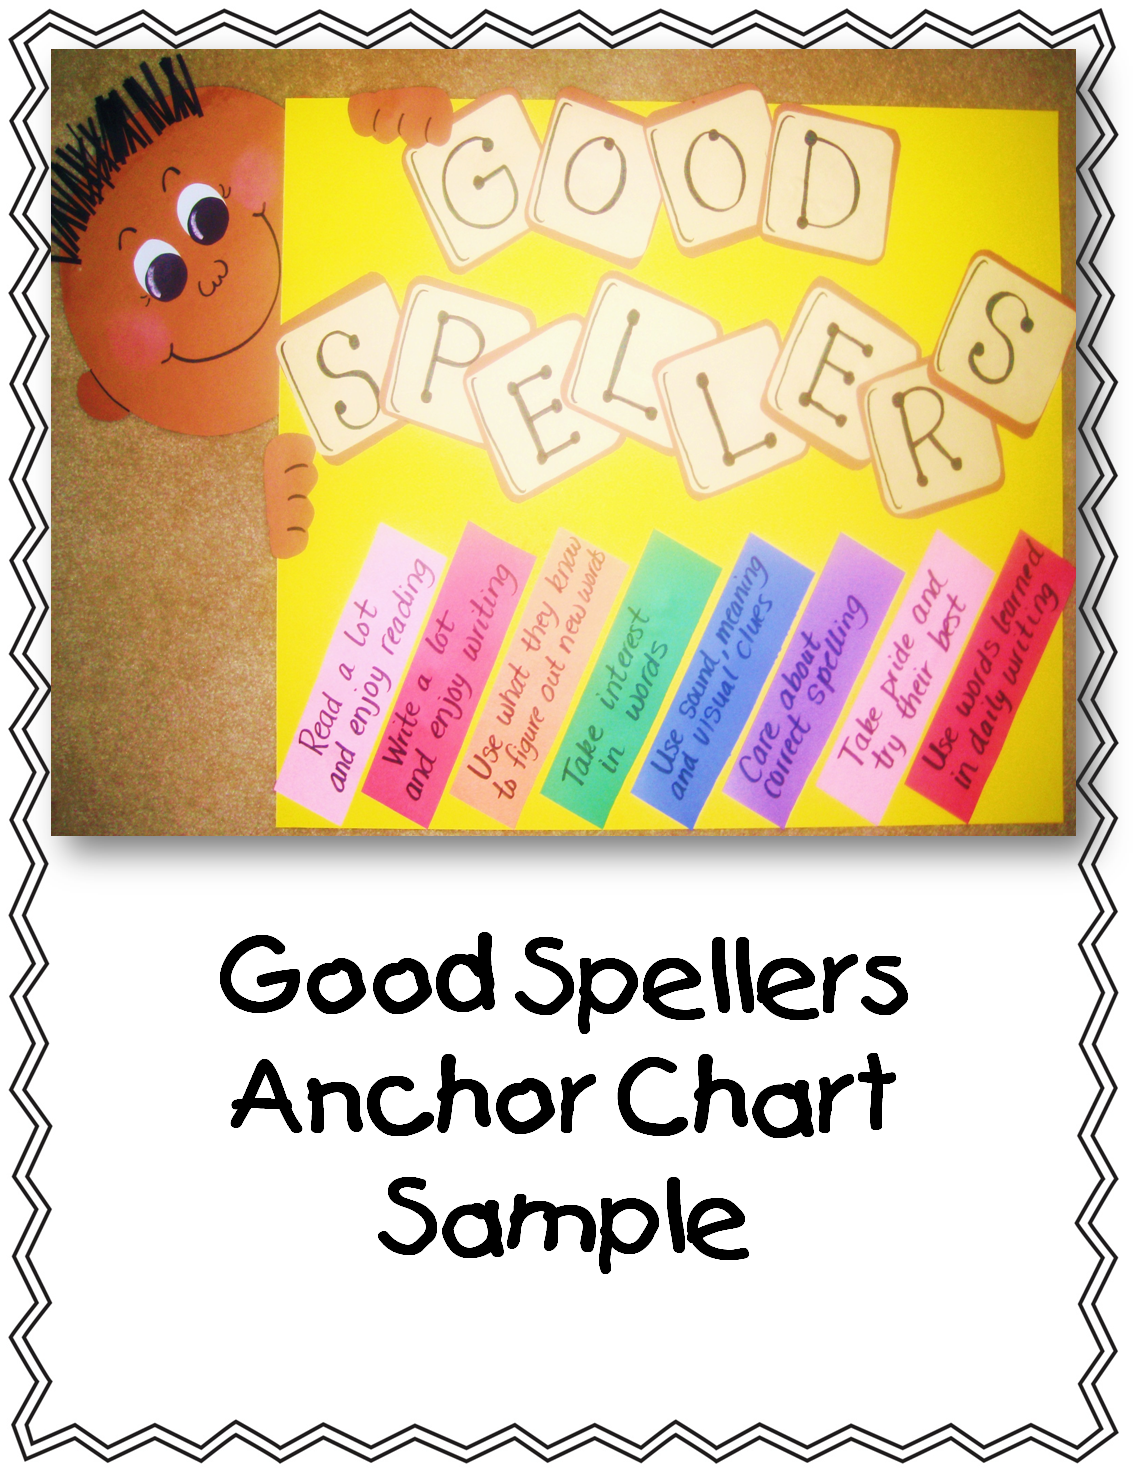 Worksheet Good At Spelling first grade wow chunk challenge spelling resource the pack contains letters to parents brainstorming recording sheets lists of chunks and words know a spell check sheet